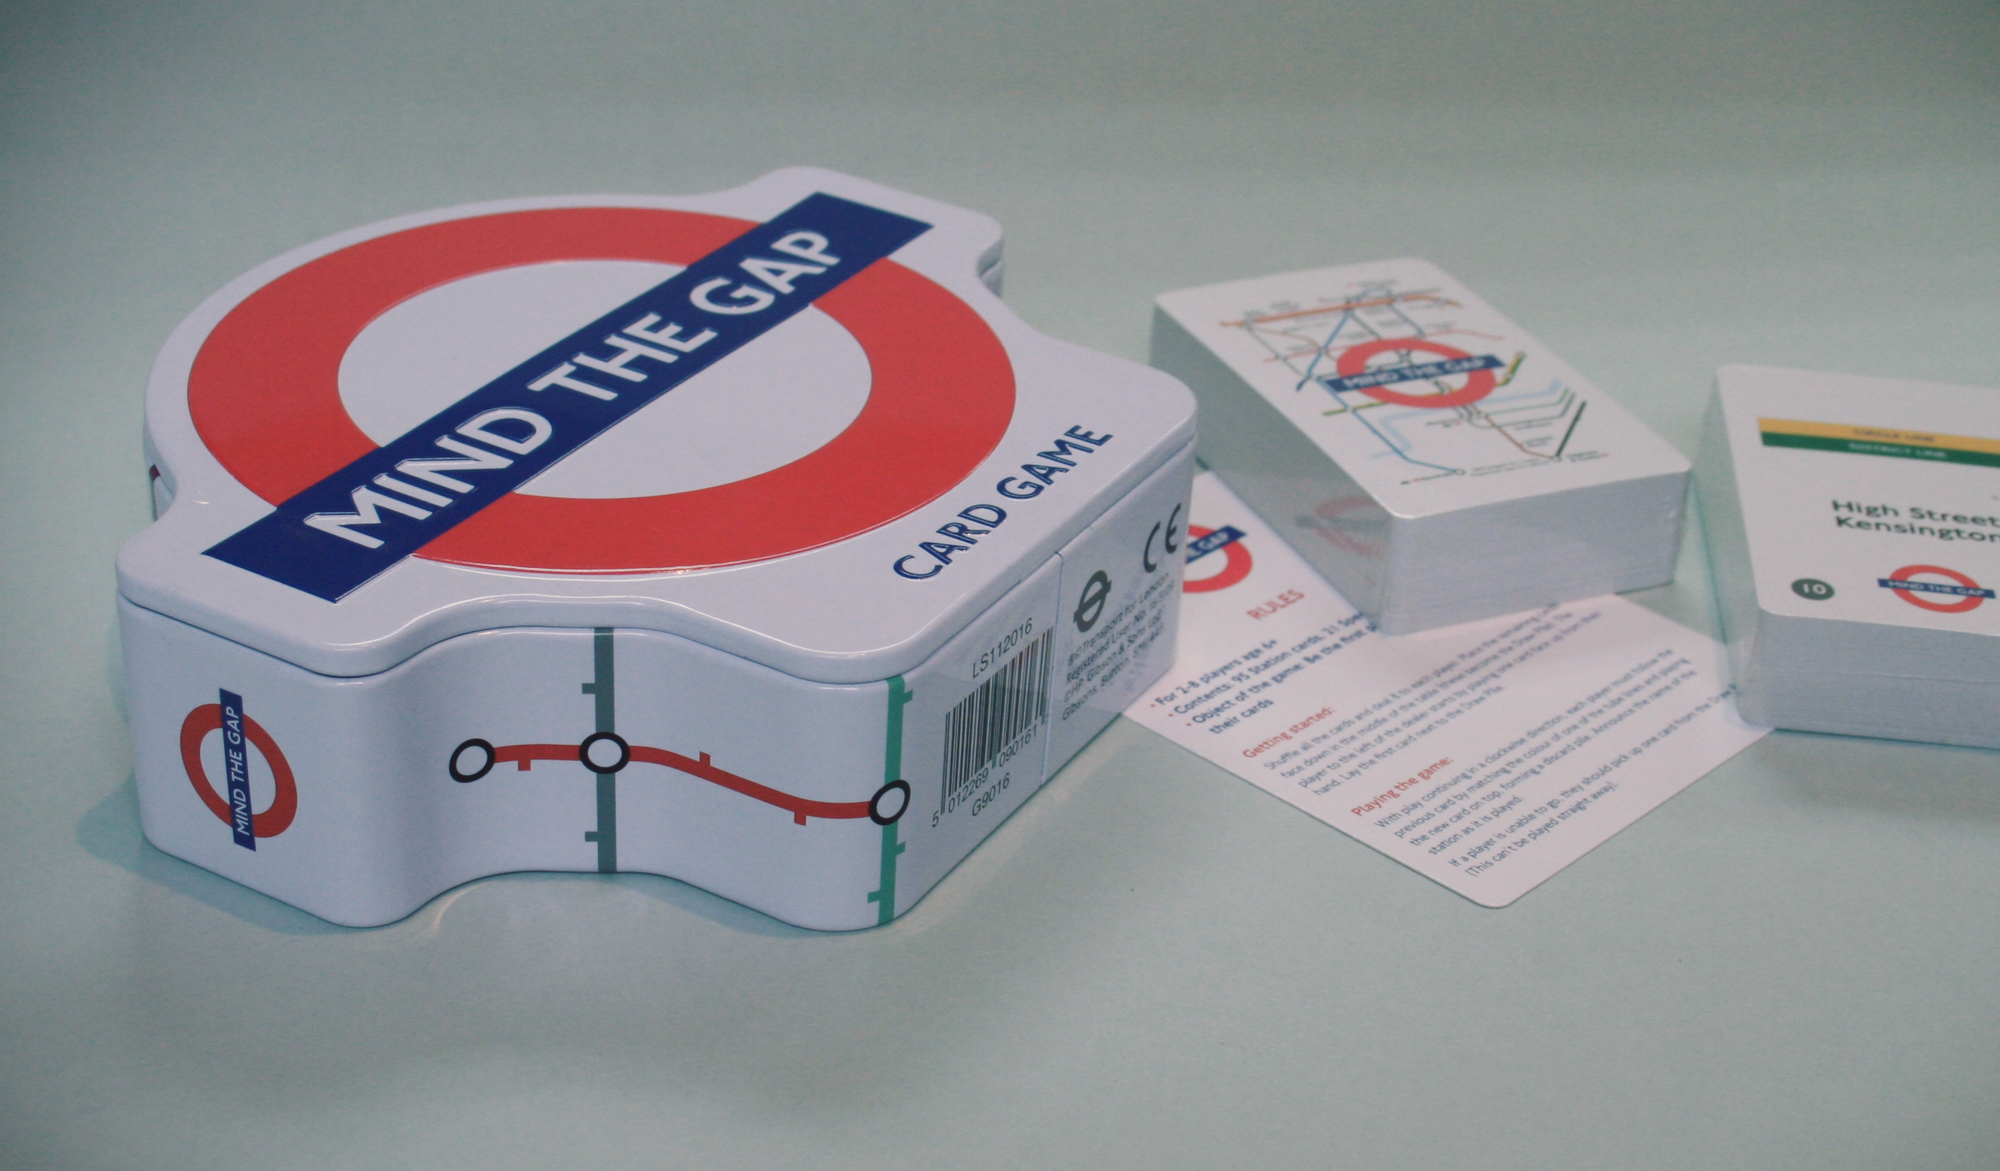 Mind the Gap tin and cards